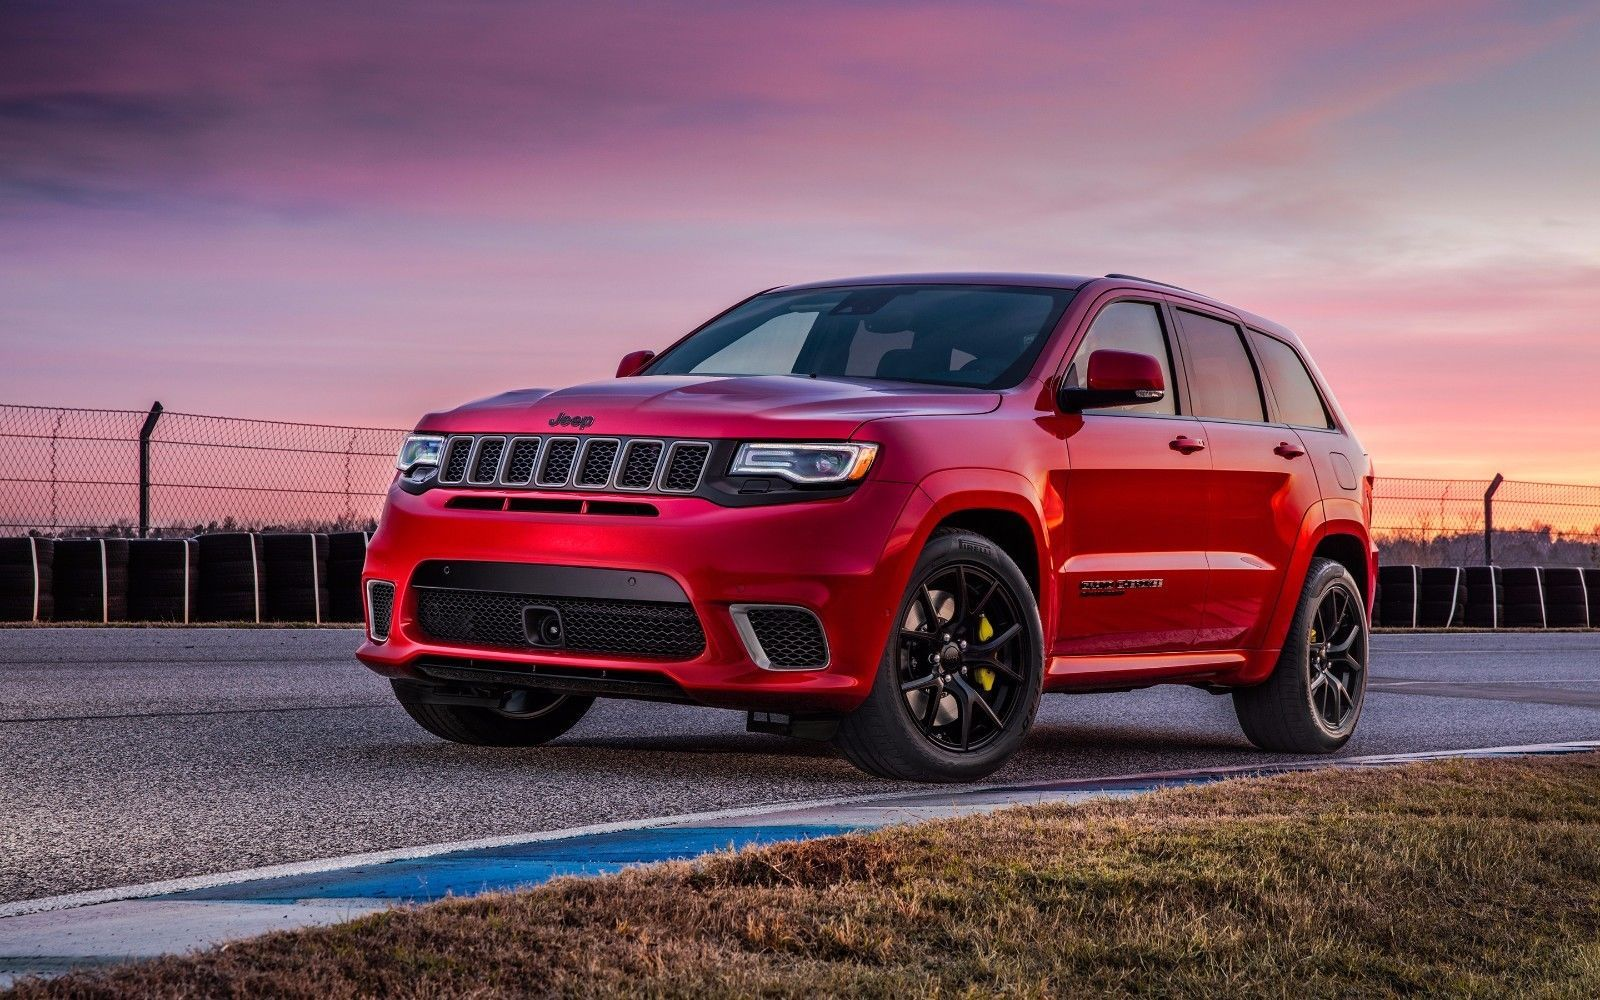 15 2018 Jeep Grand Cherokee Trackhawk Hd Art Poster 24inx18in